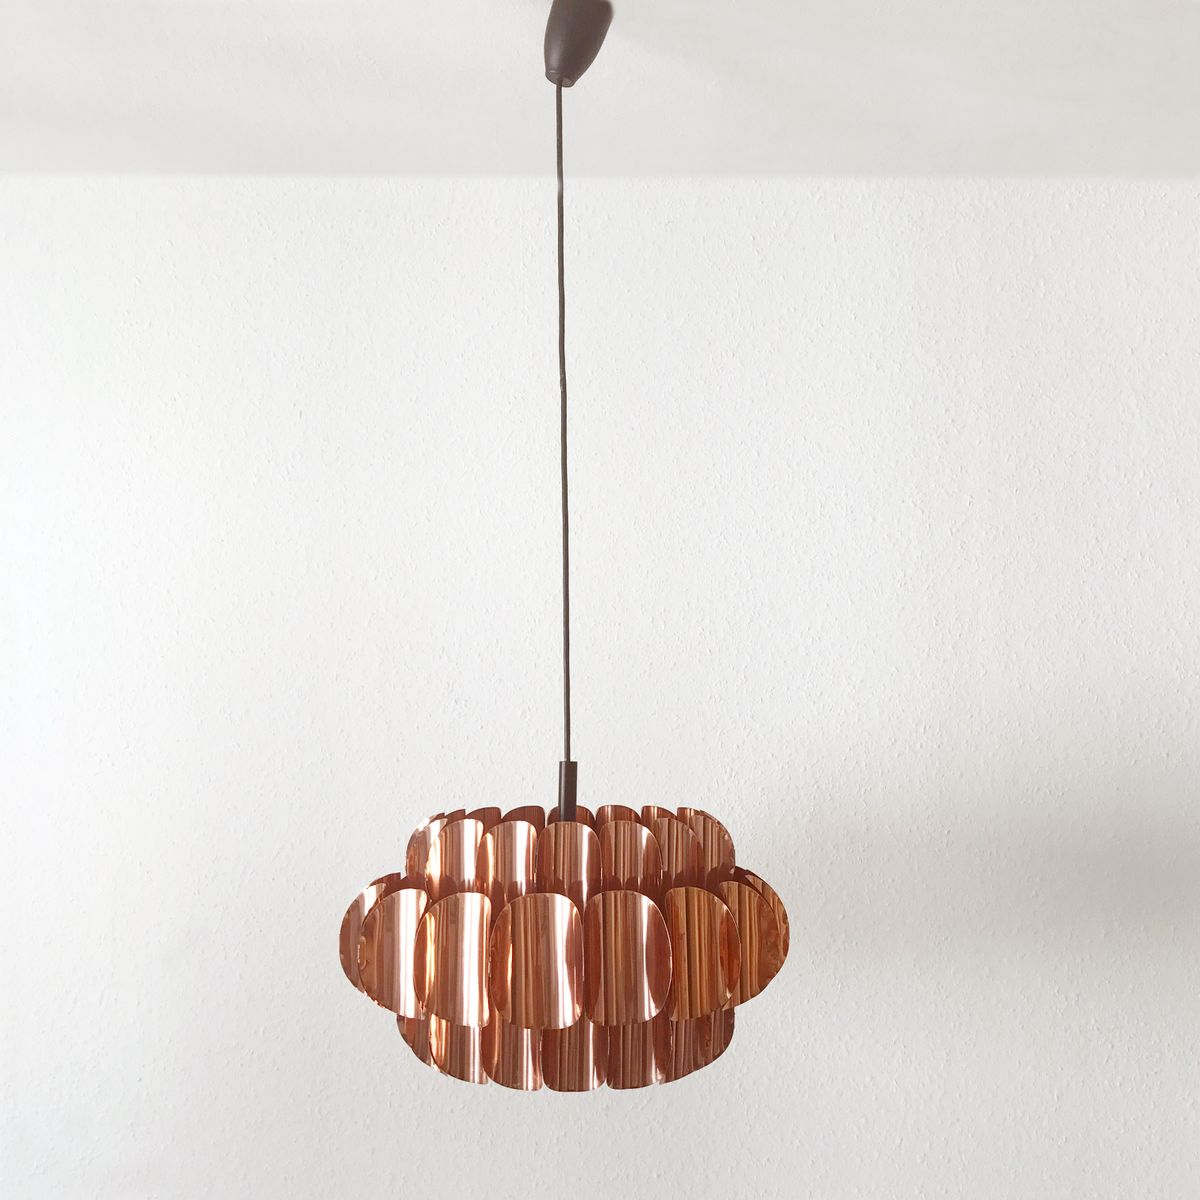 Lampe Suspension Cuivre Suspension Boule Cuivre